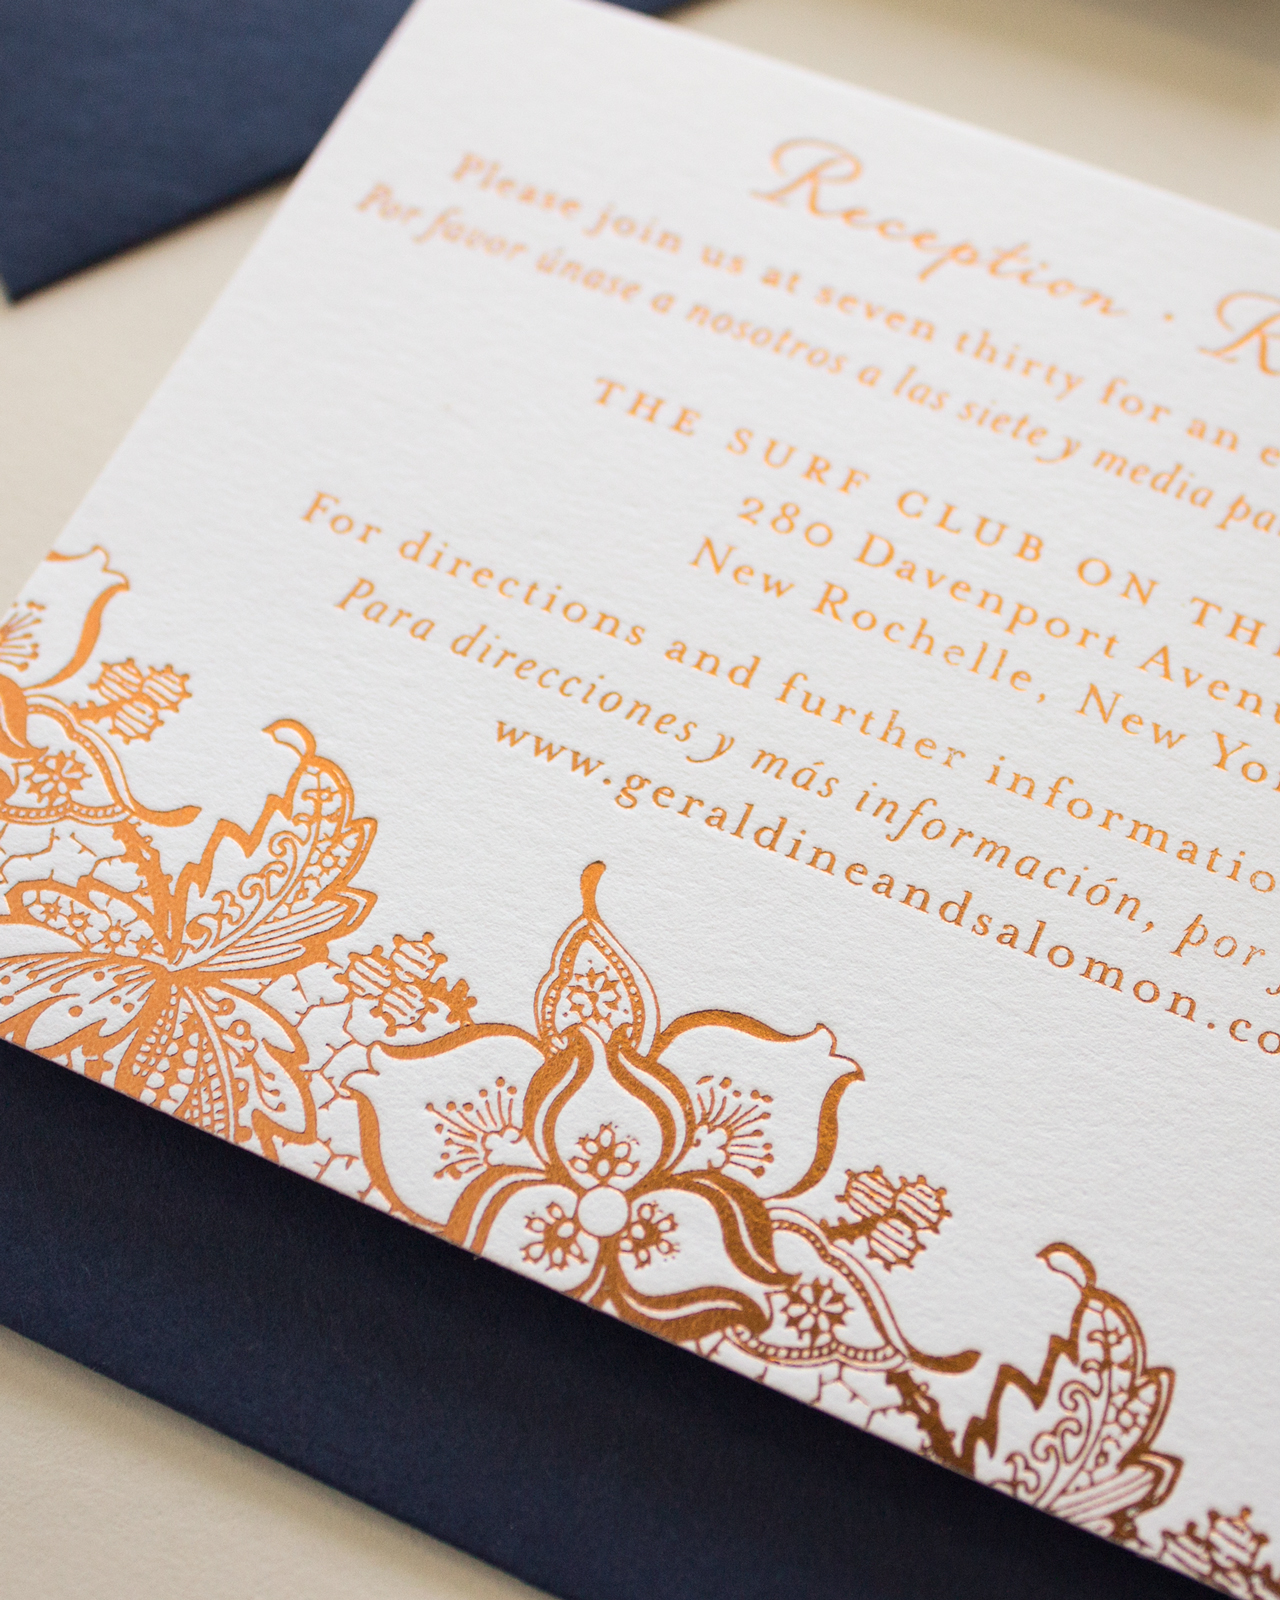 Bilingual Copper Foil and Blind Letterpress Wedding Invitations by Banter and Charm